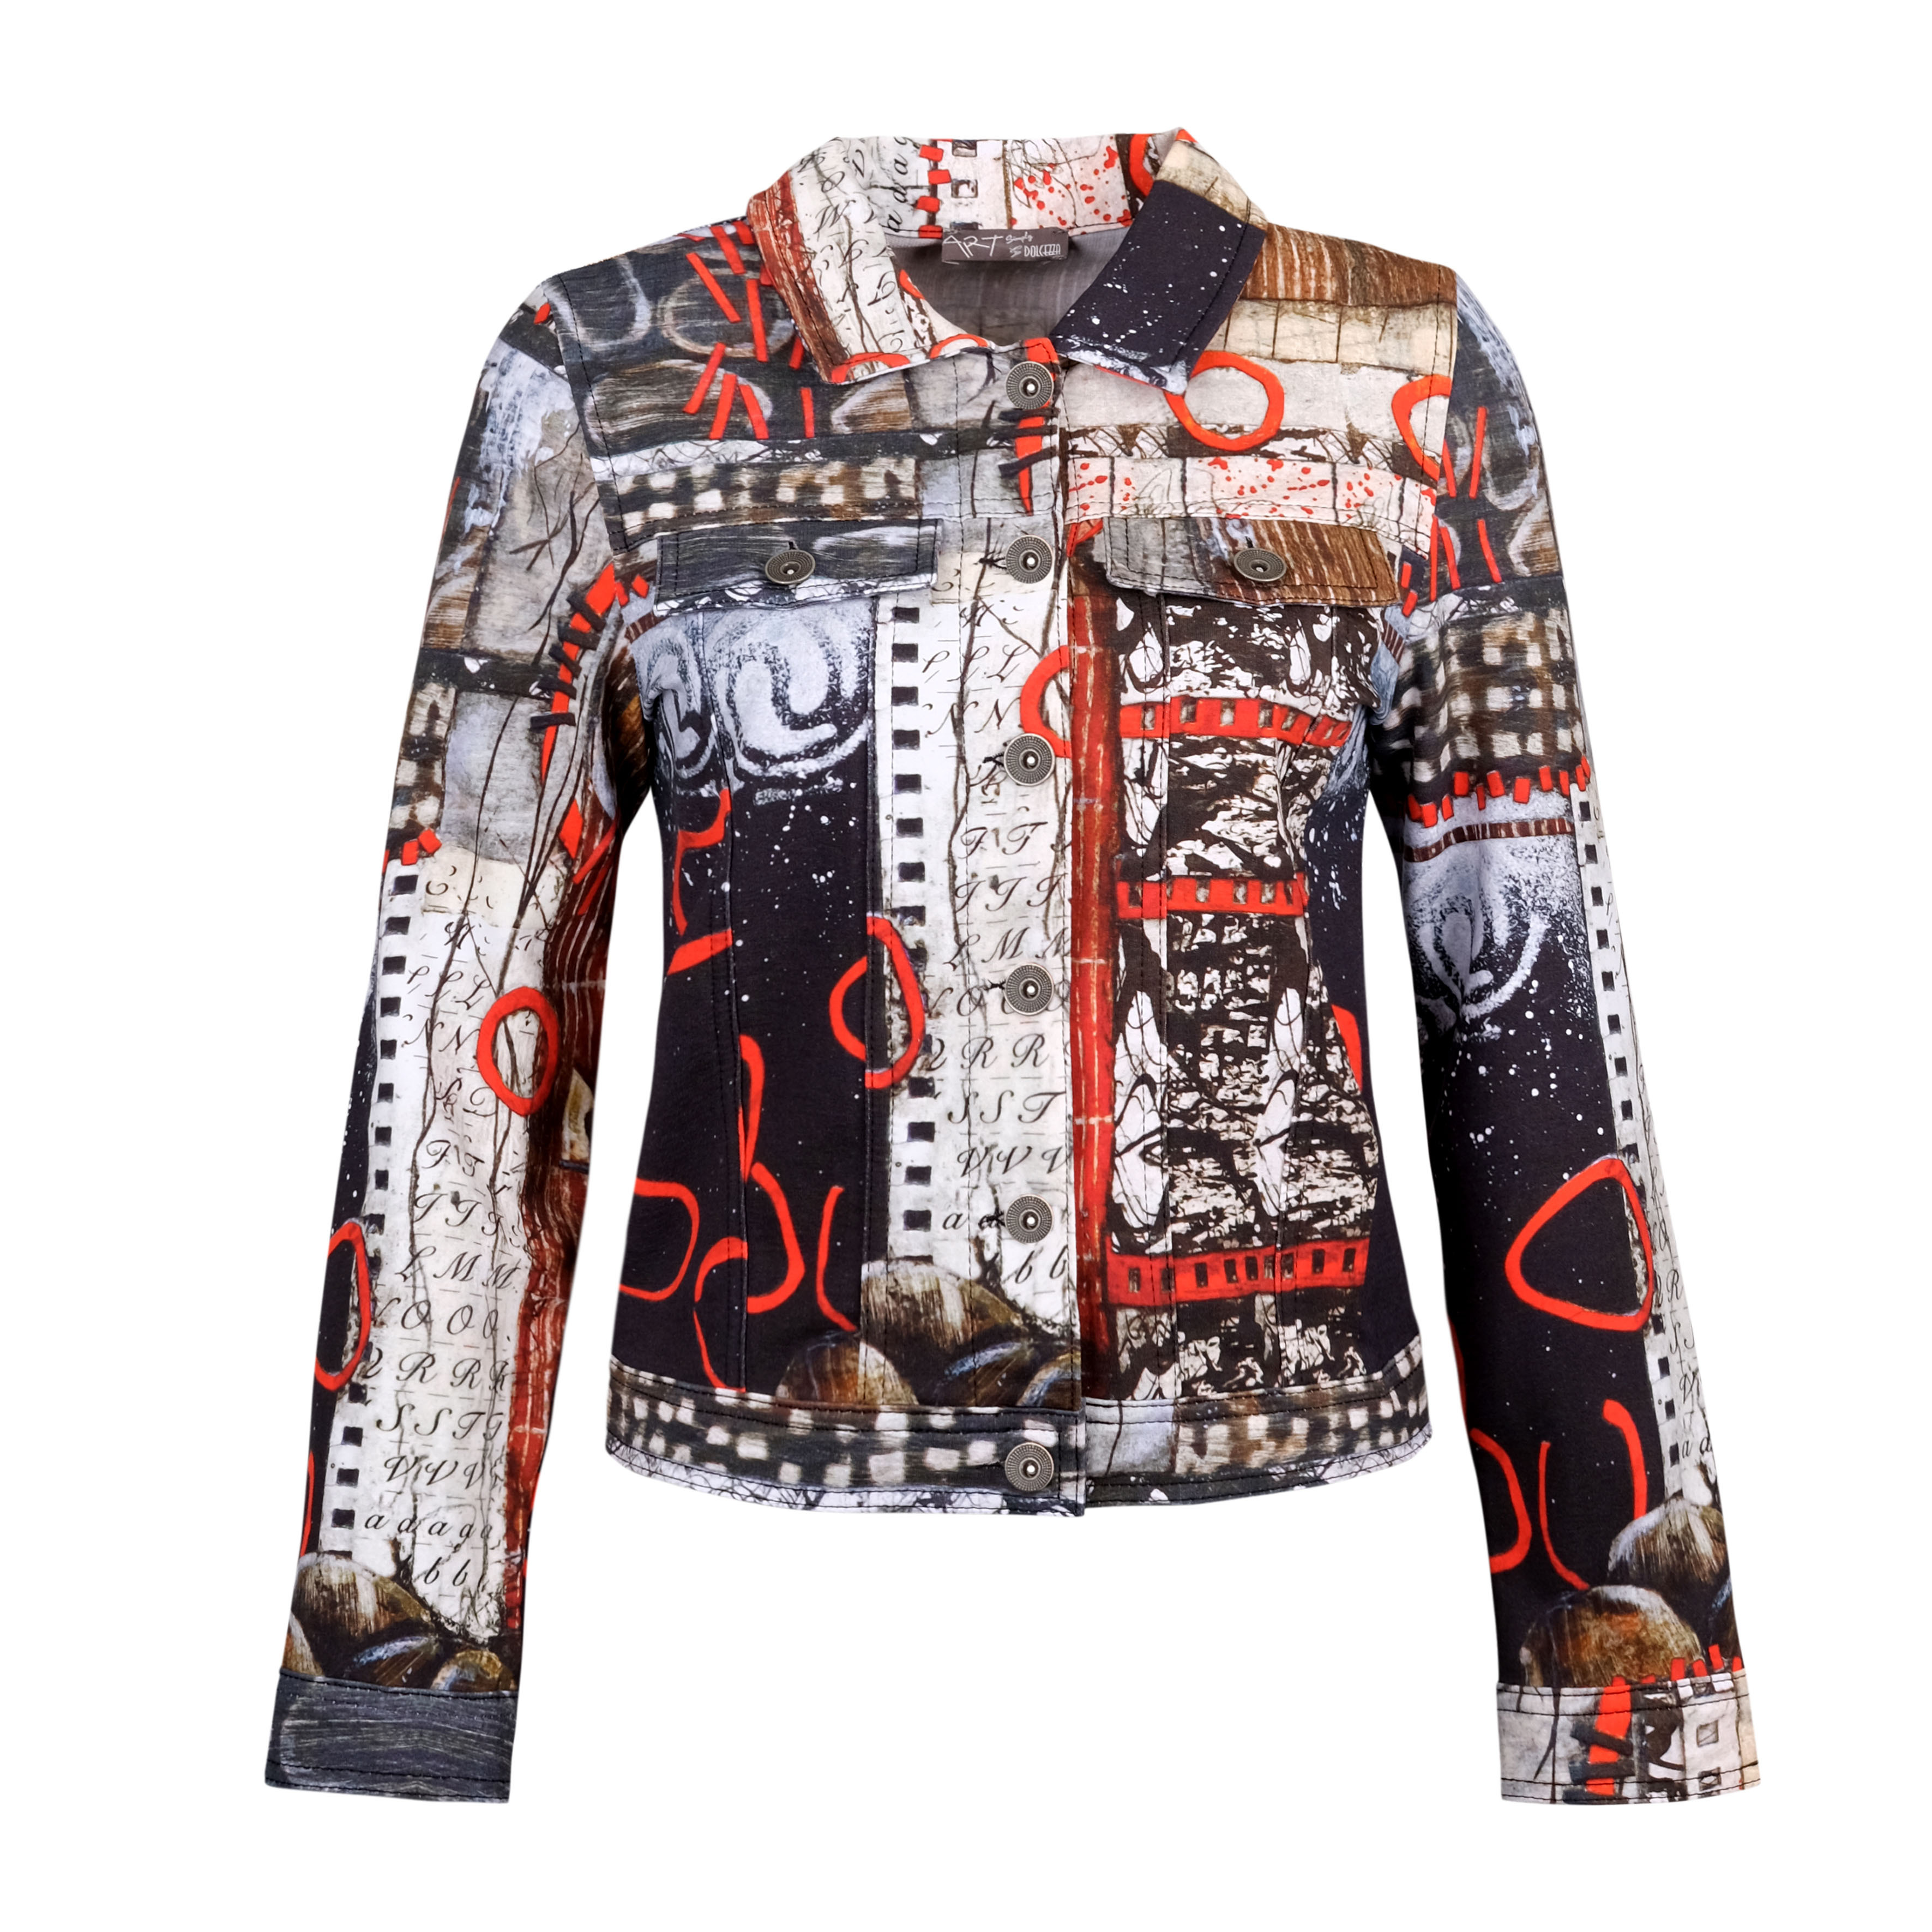 Simply Art Dolcezza: Rising Up In Color Soft Denim Jacket